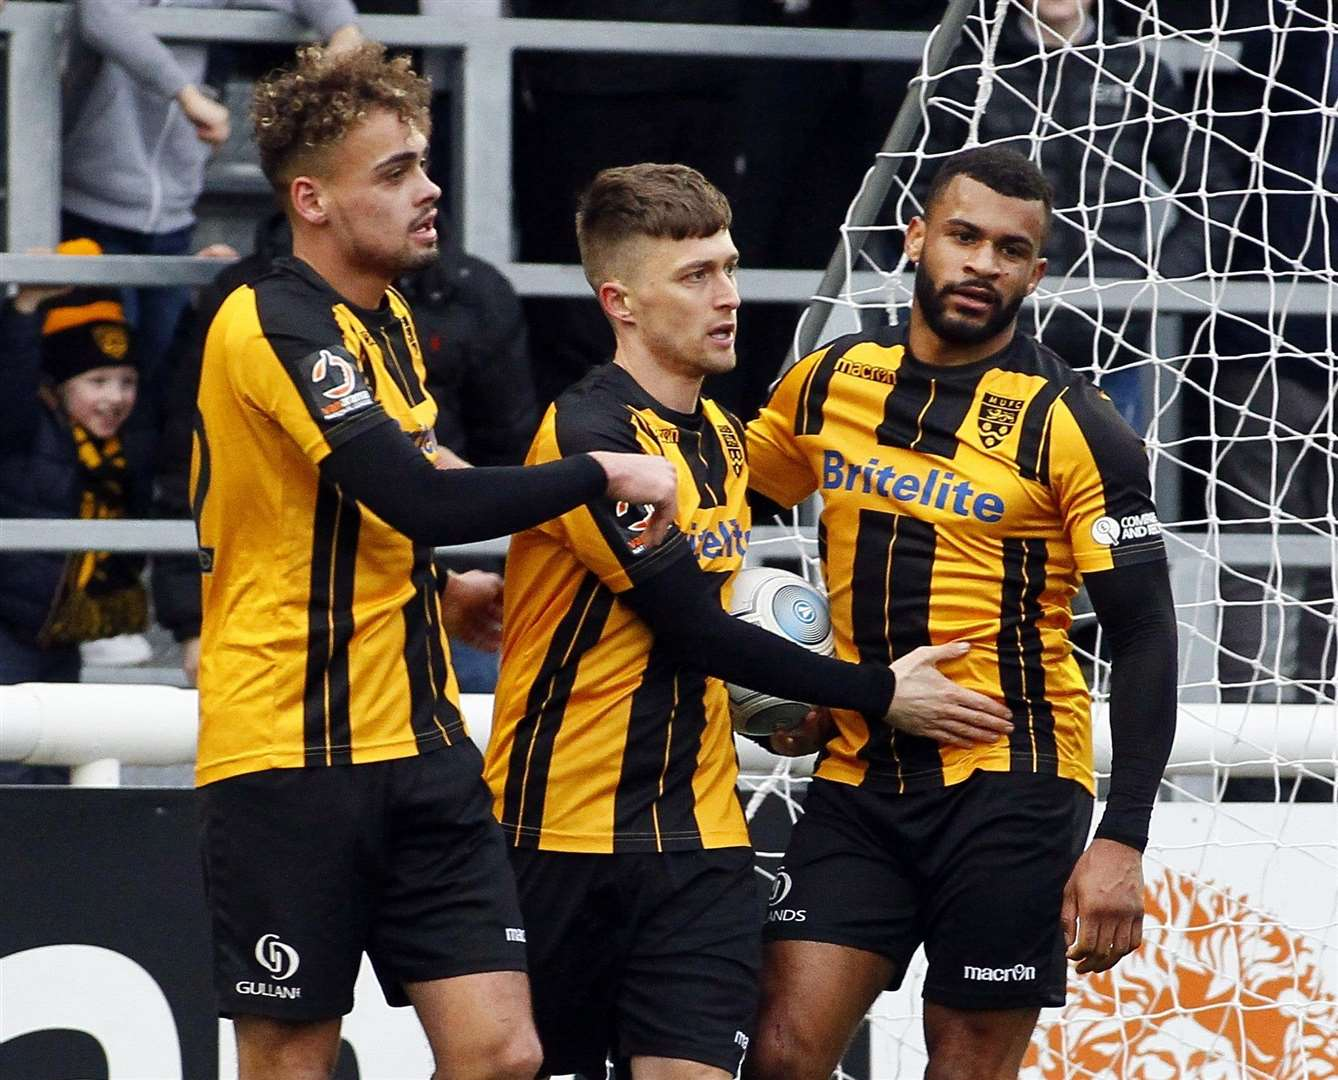 Jake Robinson, centre, with Michael Phillips and Dan Wishart after forcing Maidstone's own-goal equaliser .Picture: Sean Aidan